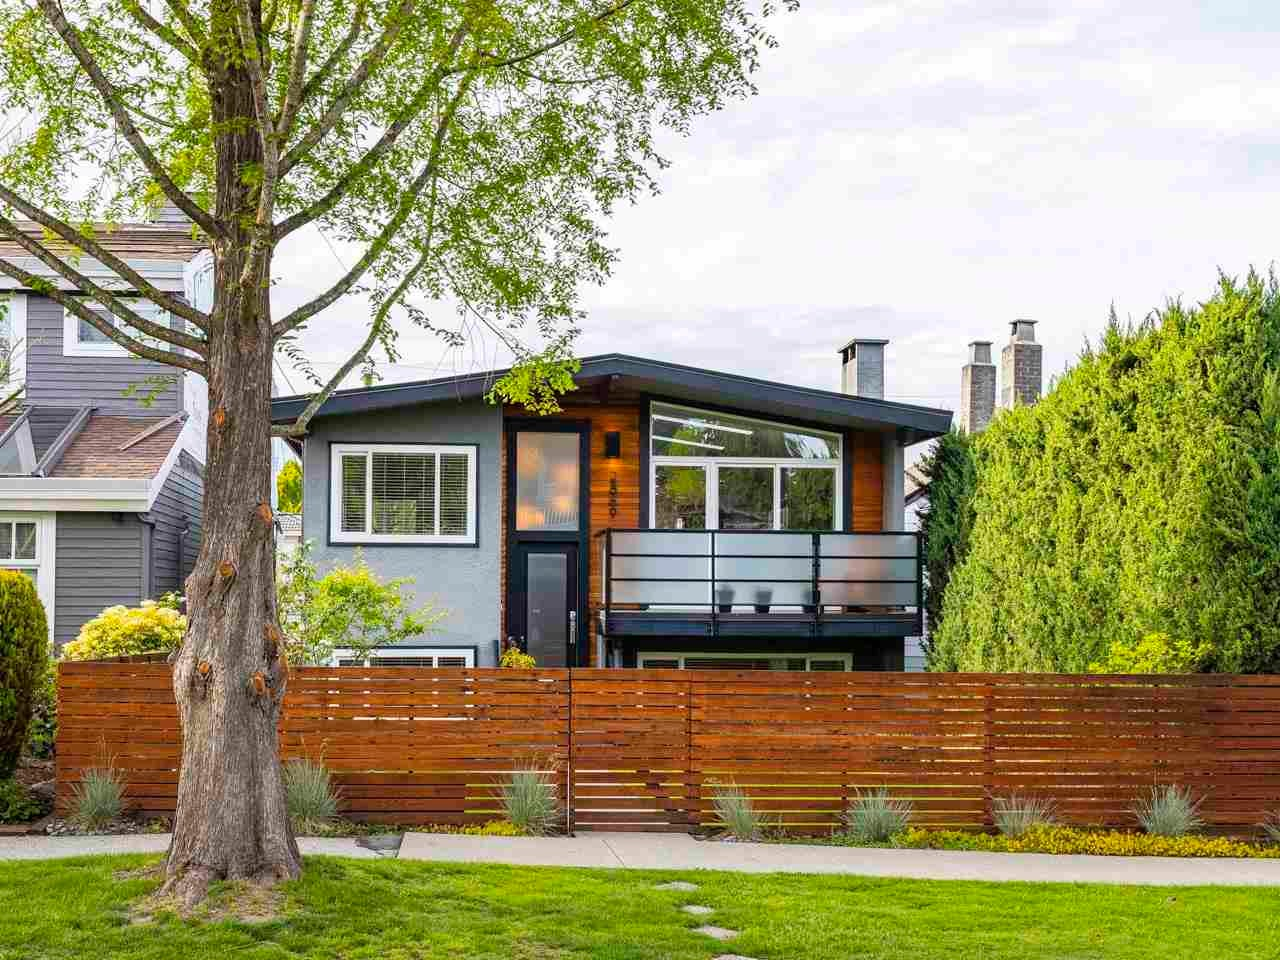 2869 W 24TH AVENUE - Arbutus House/Single Family for sale, 5 Bedrooms (R2578688) - #1